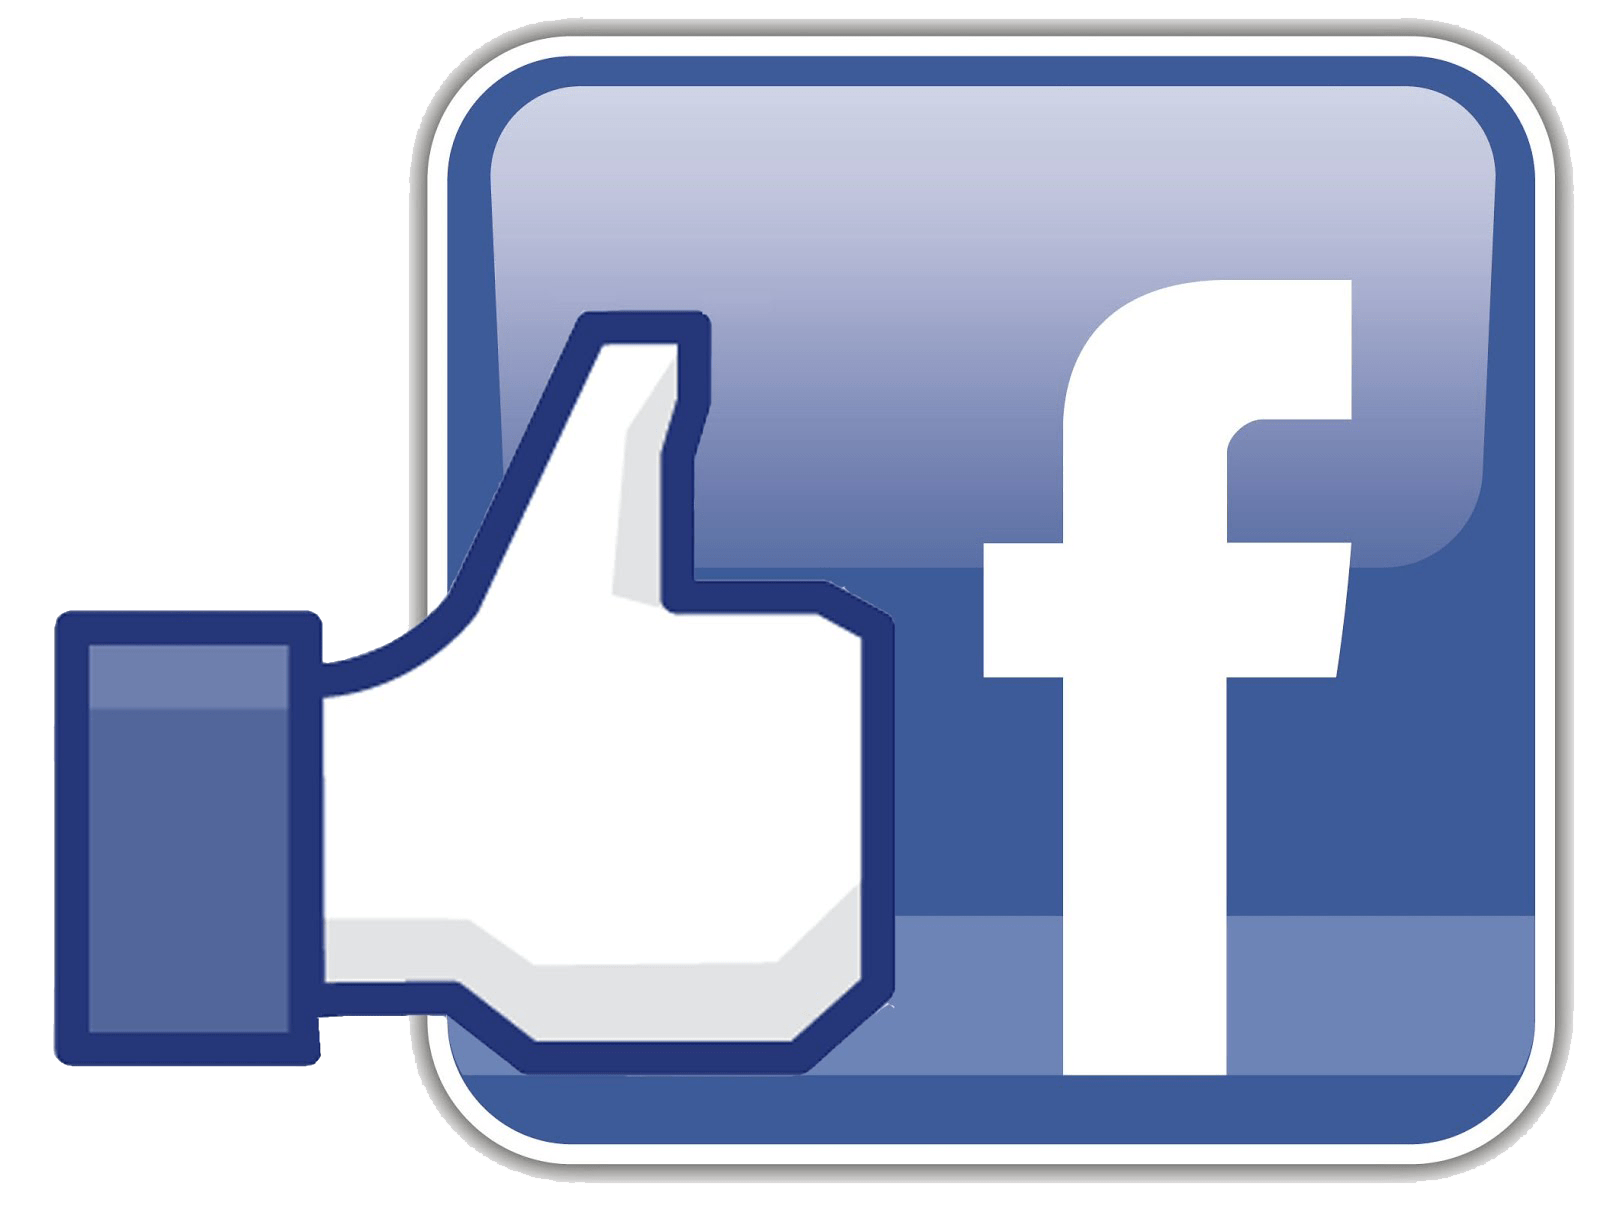 Facebook Logo 2016 Png, Transparent PNG, png collections at.